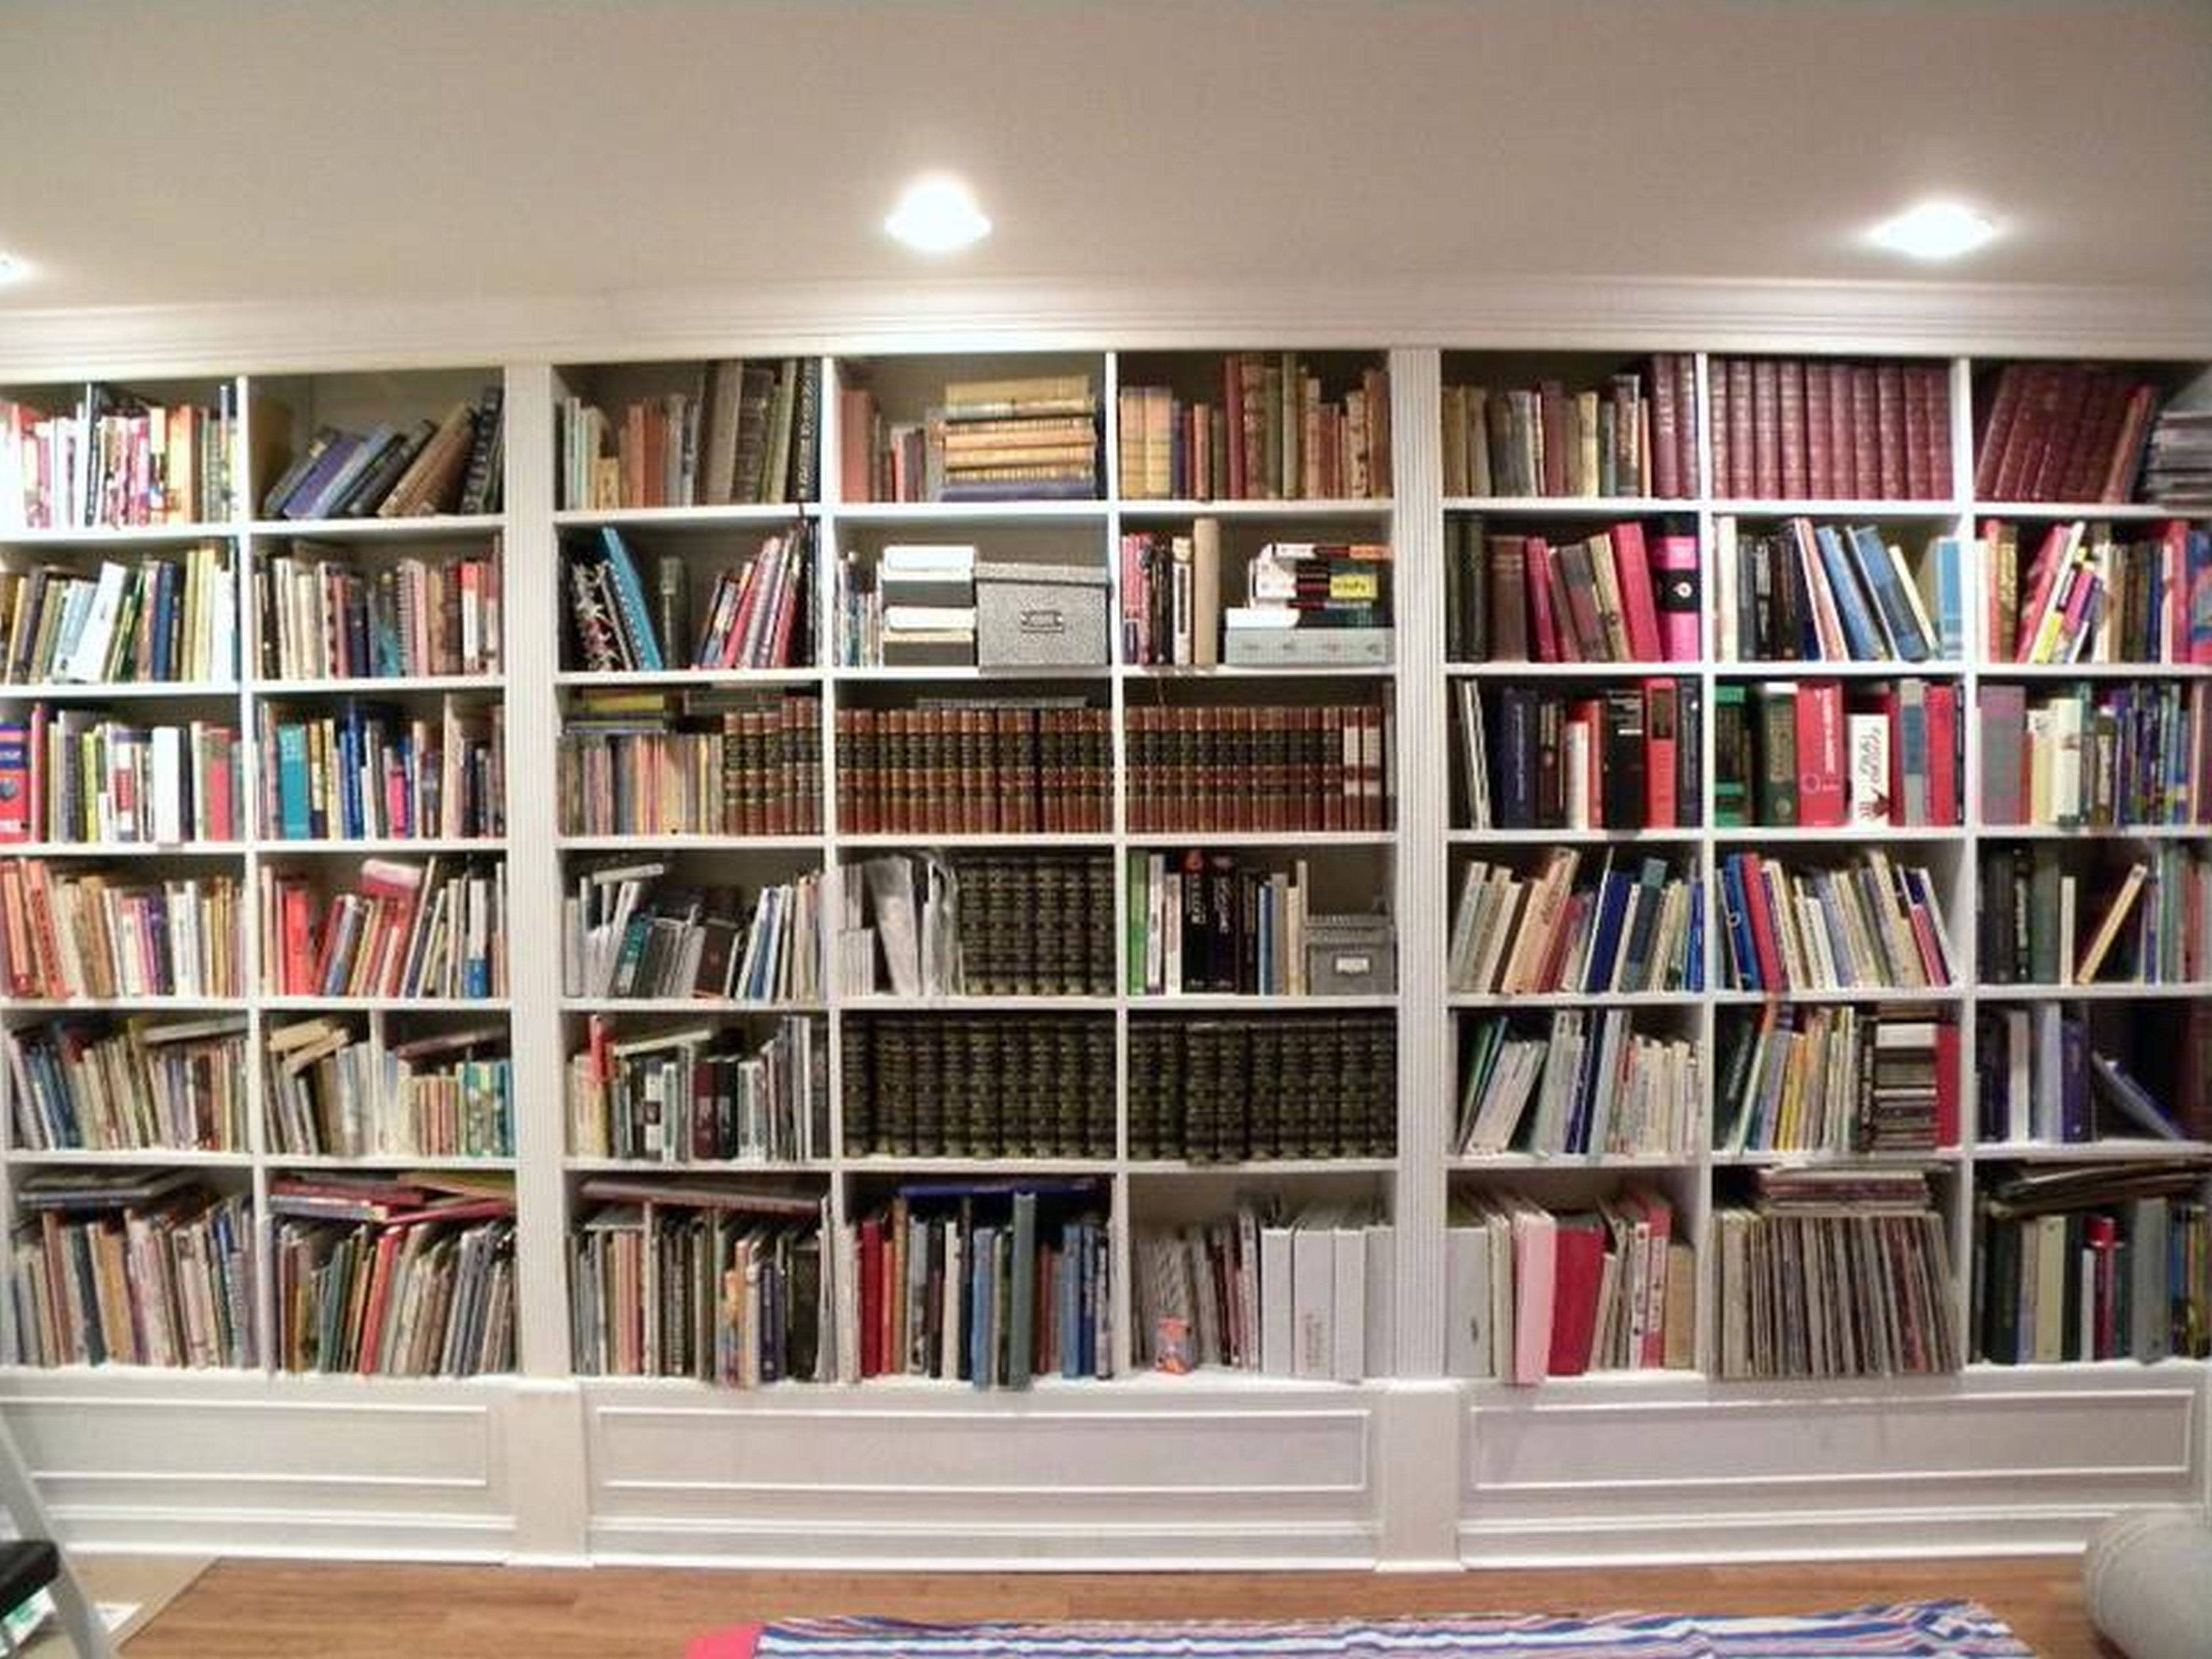 Cute Wall To Bookshelves Creativity Interesting Building Sweet Ings Representation Best Custom Built